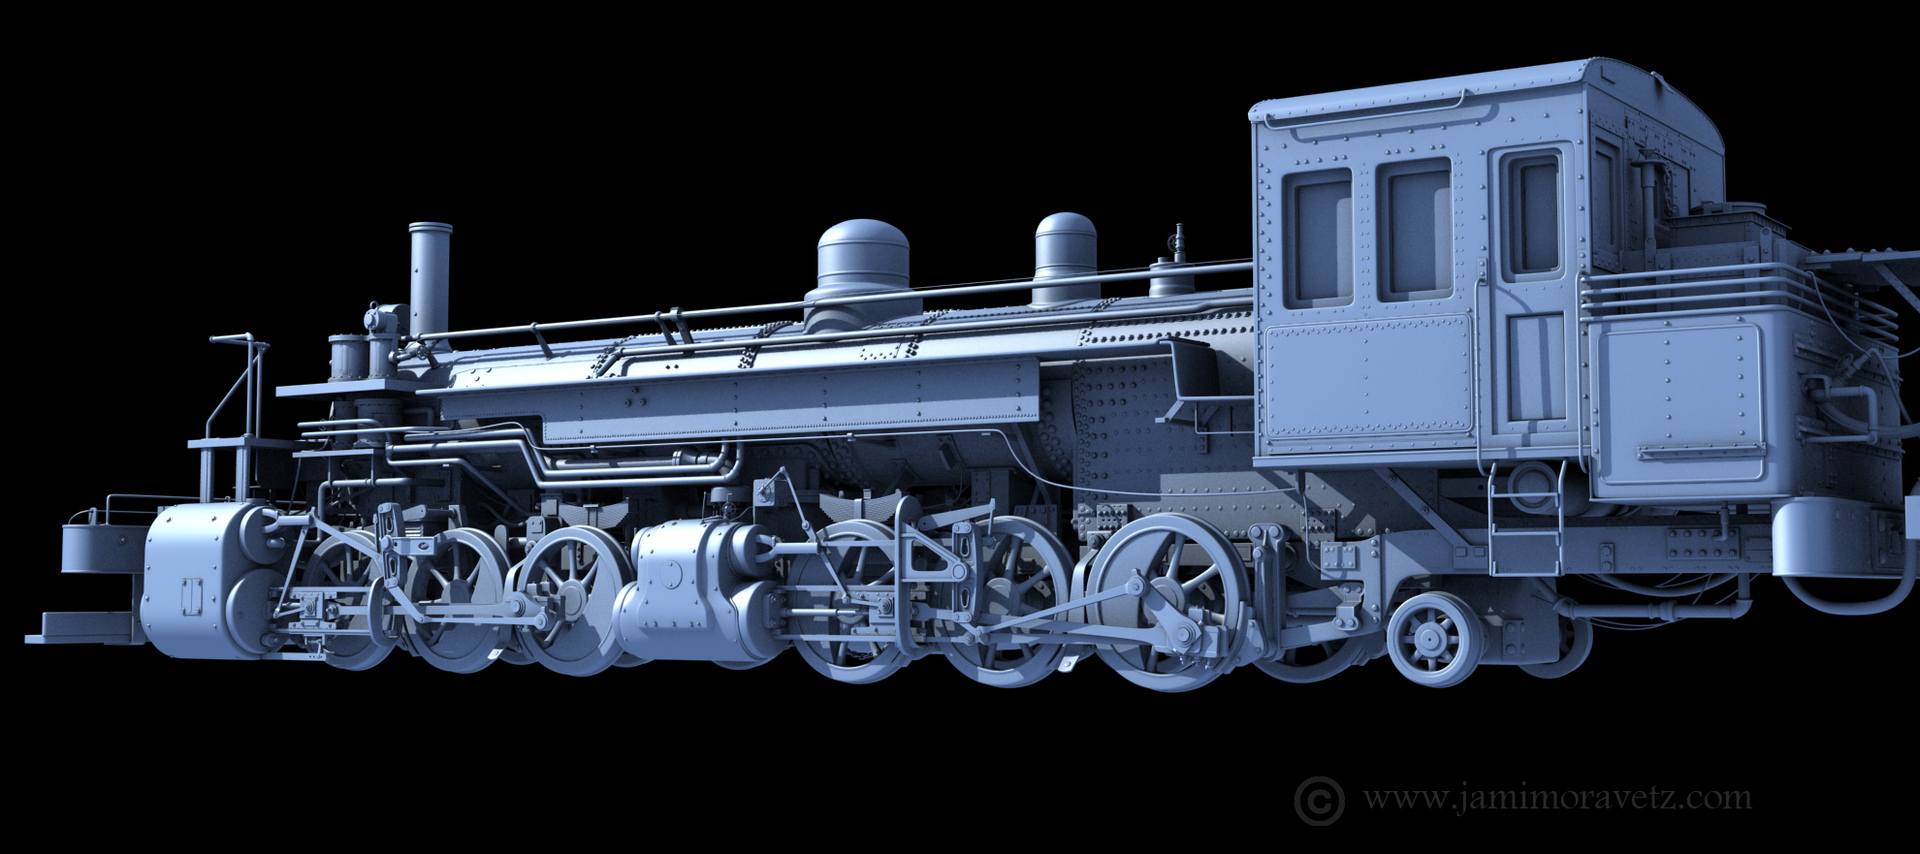 Train engine l